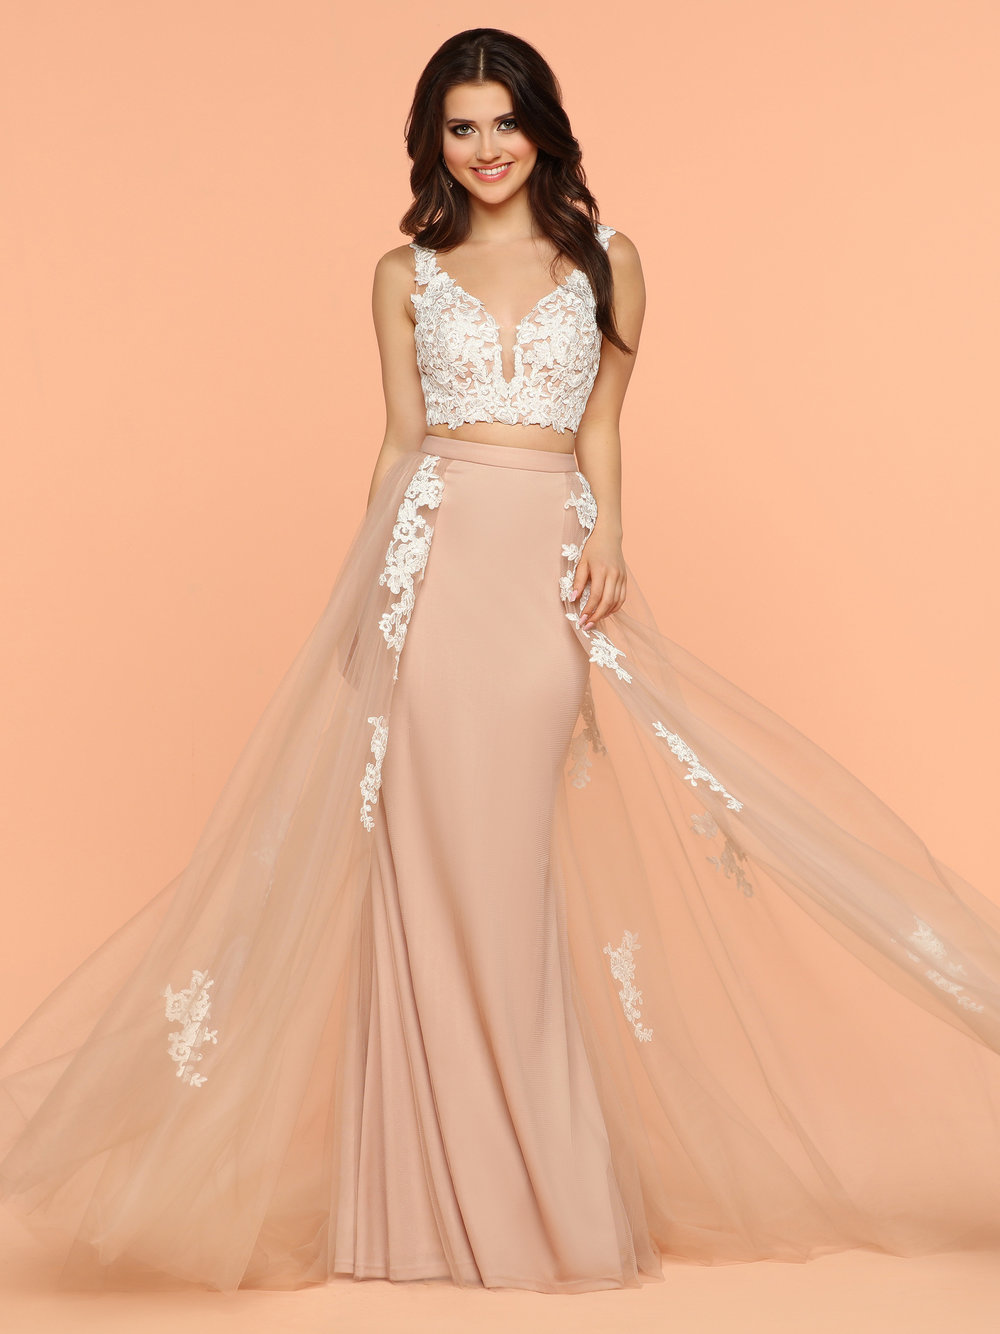 734a530bc230 Sparkle Buff Ivory 71859 Two Piece Dress With A Lace Top Sweetheart  Neckline Open Back